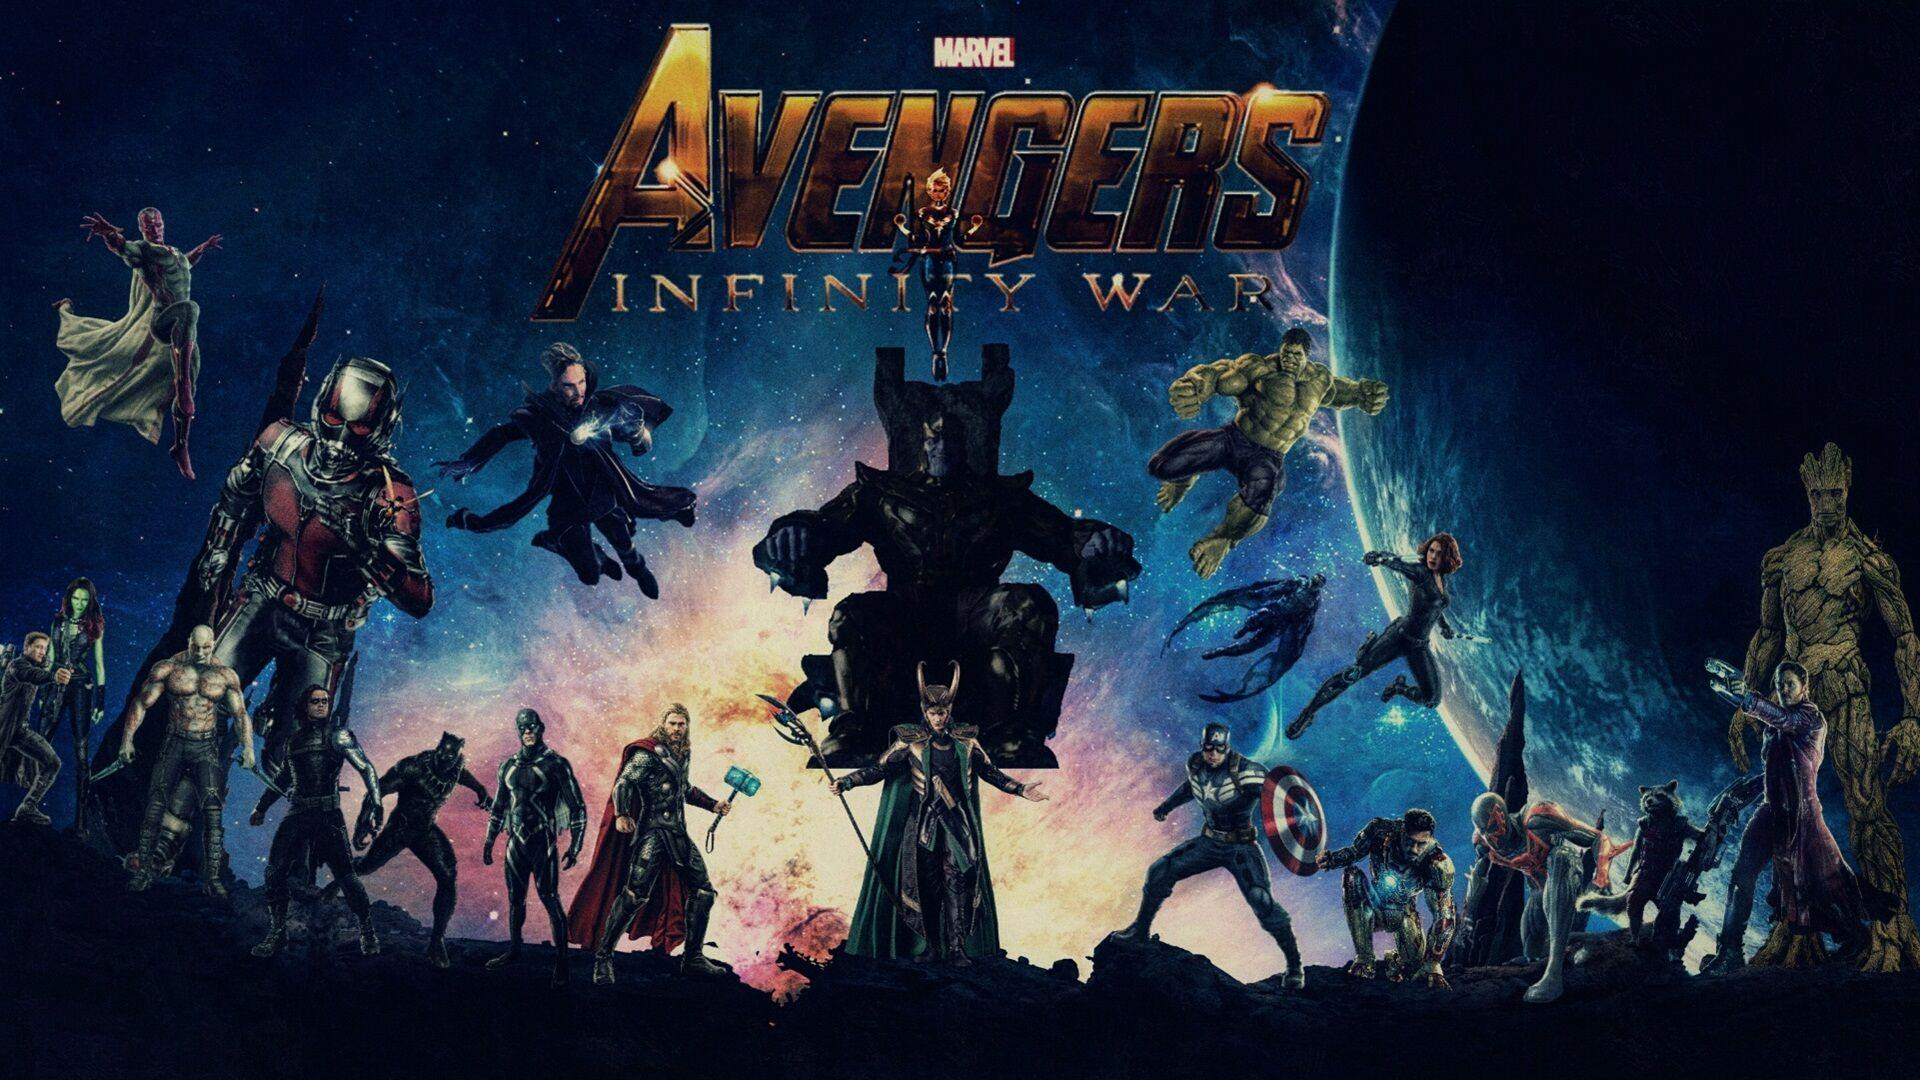 Avengers Infinity War Cast Wallpapers 27146